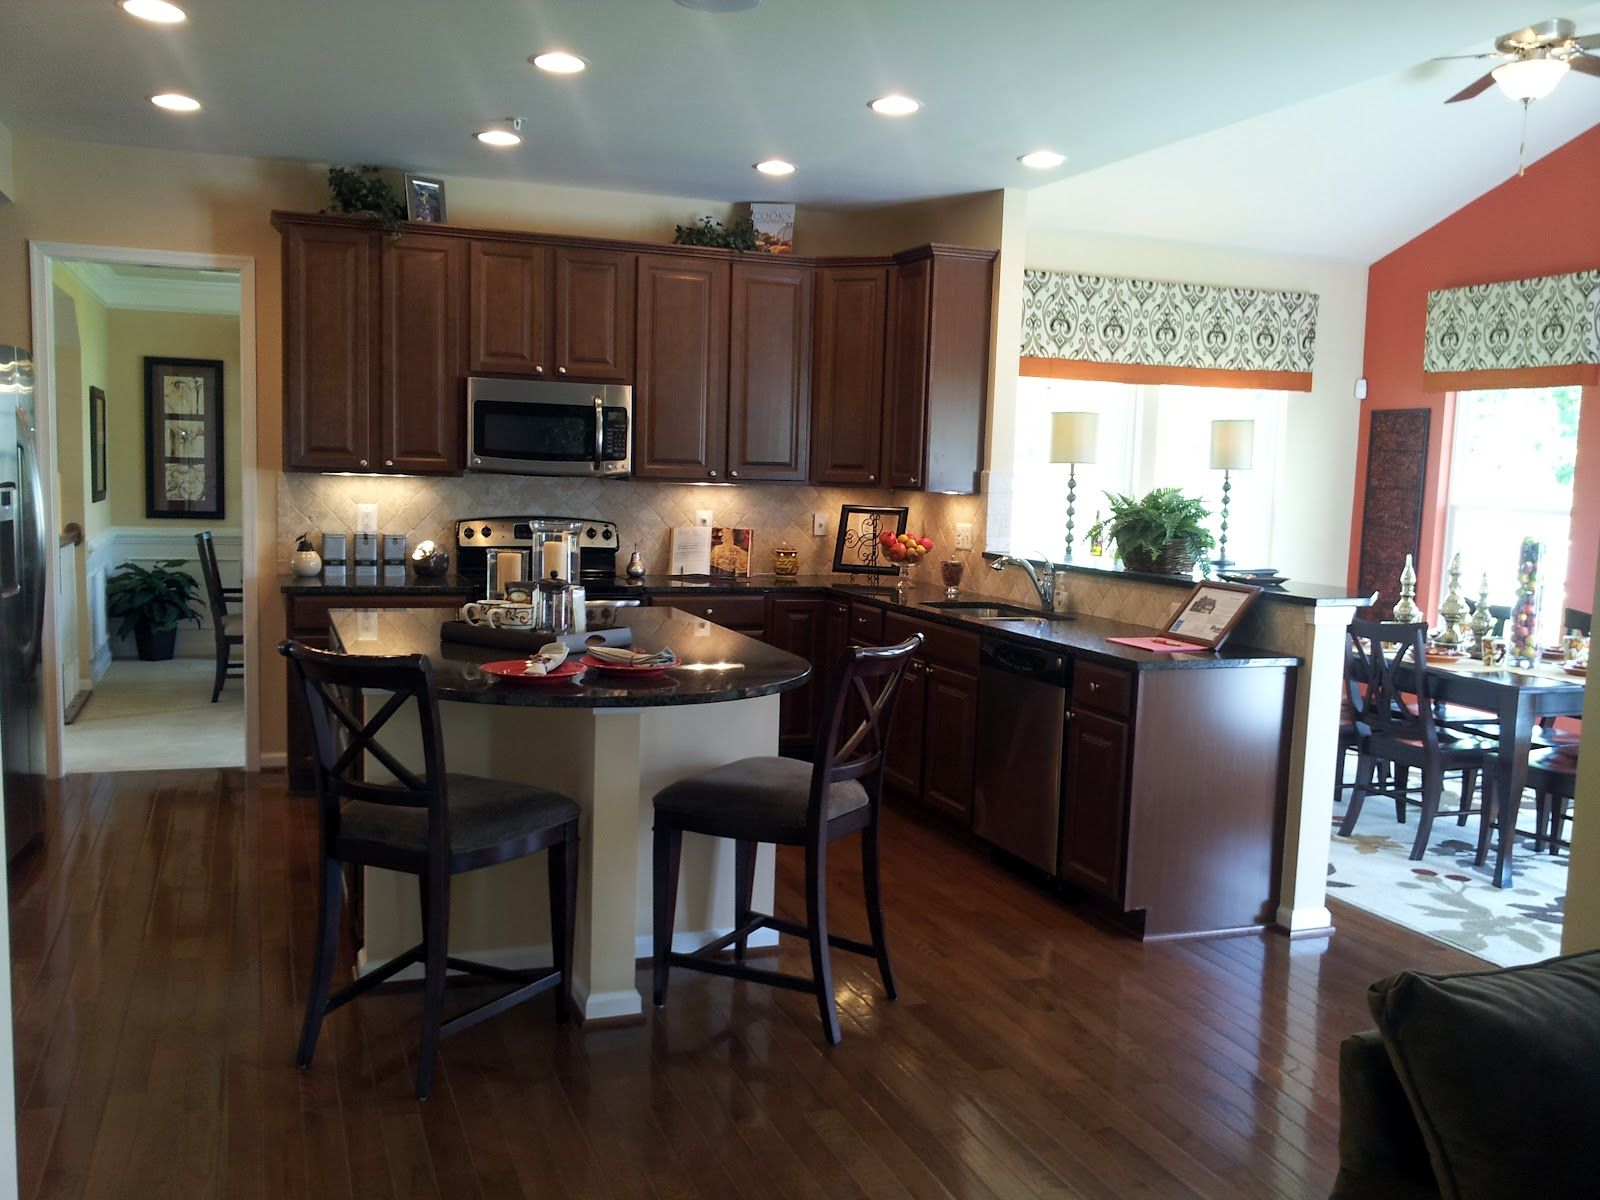 Ryan Homes Kitchens What We Love Most About The Zachary